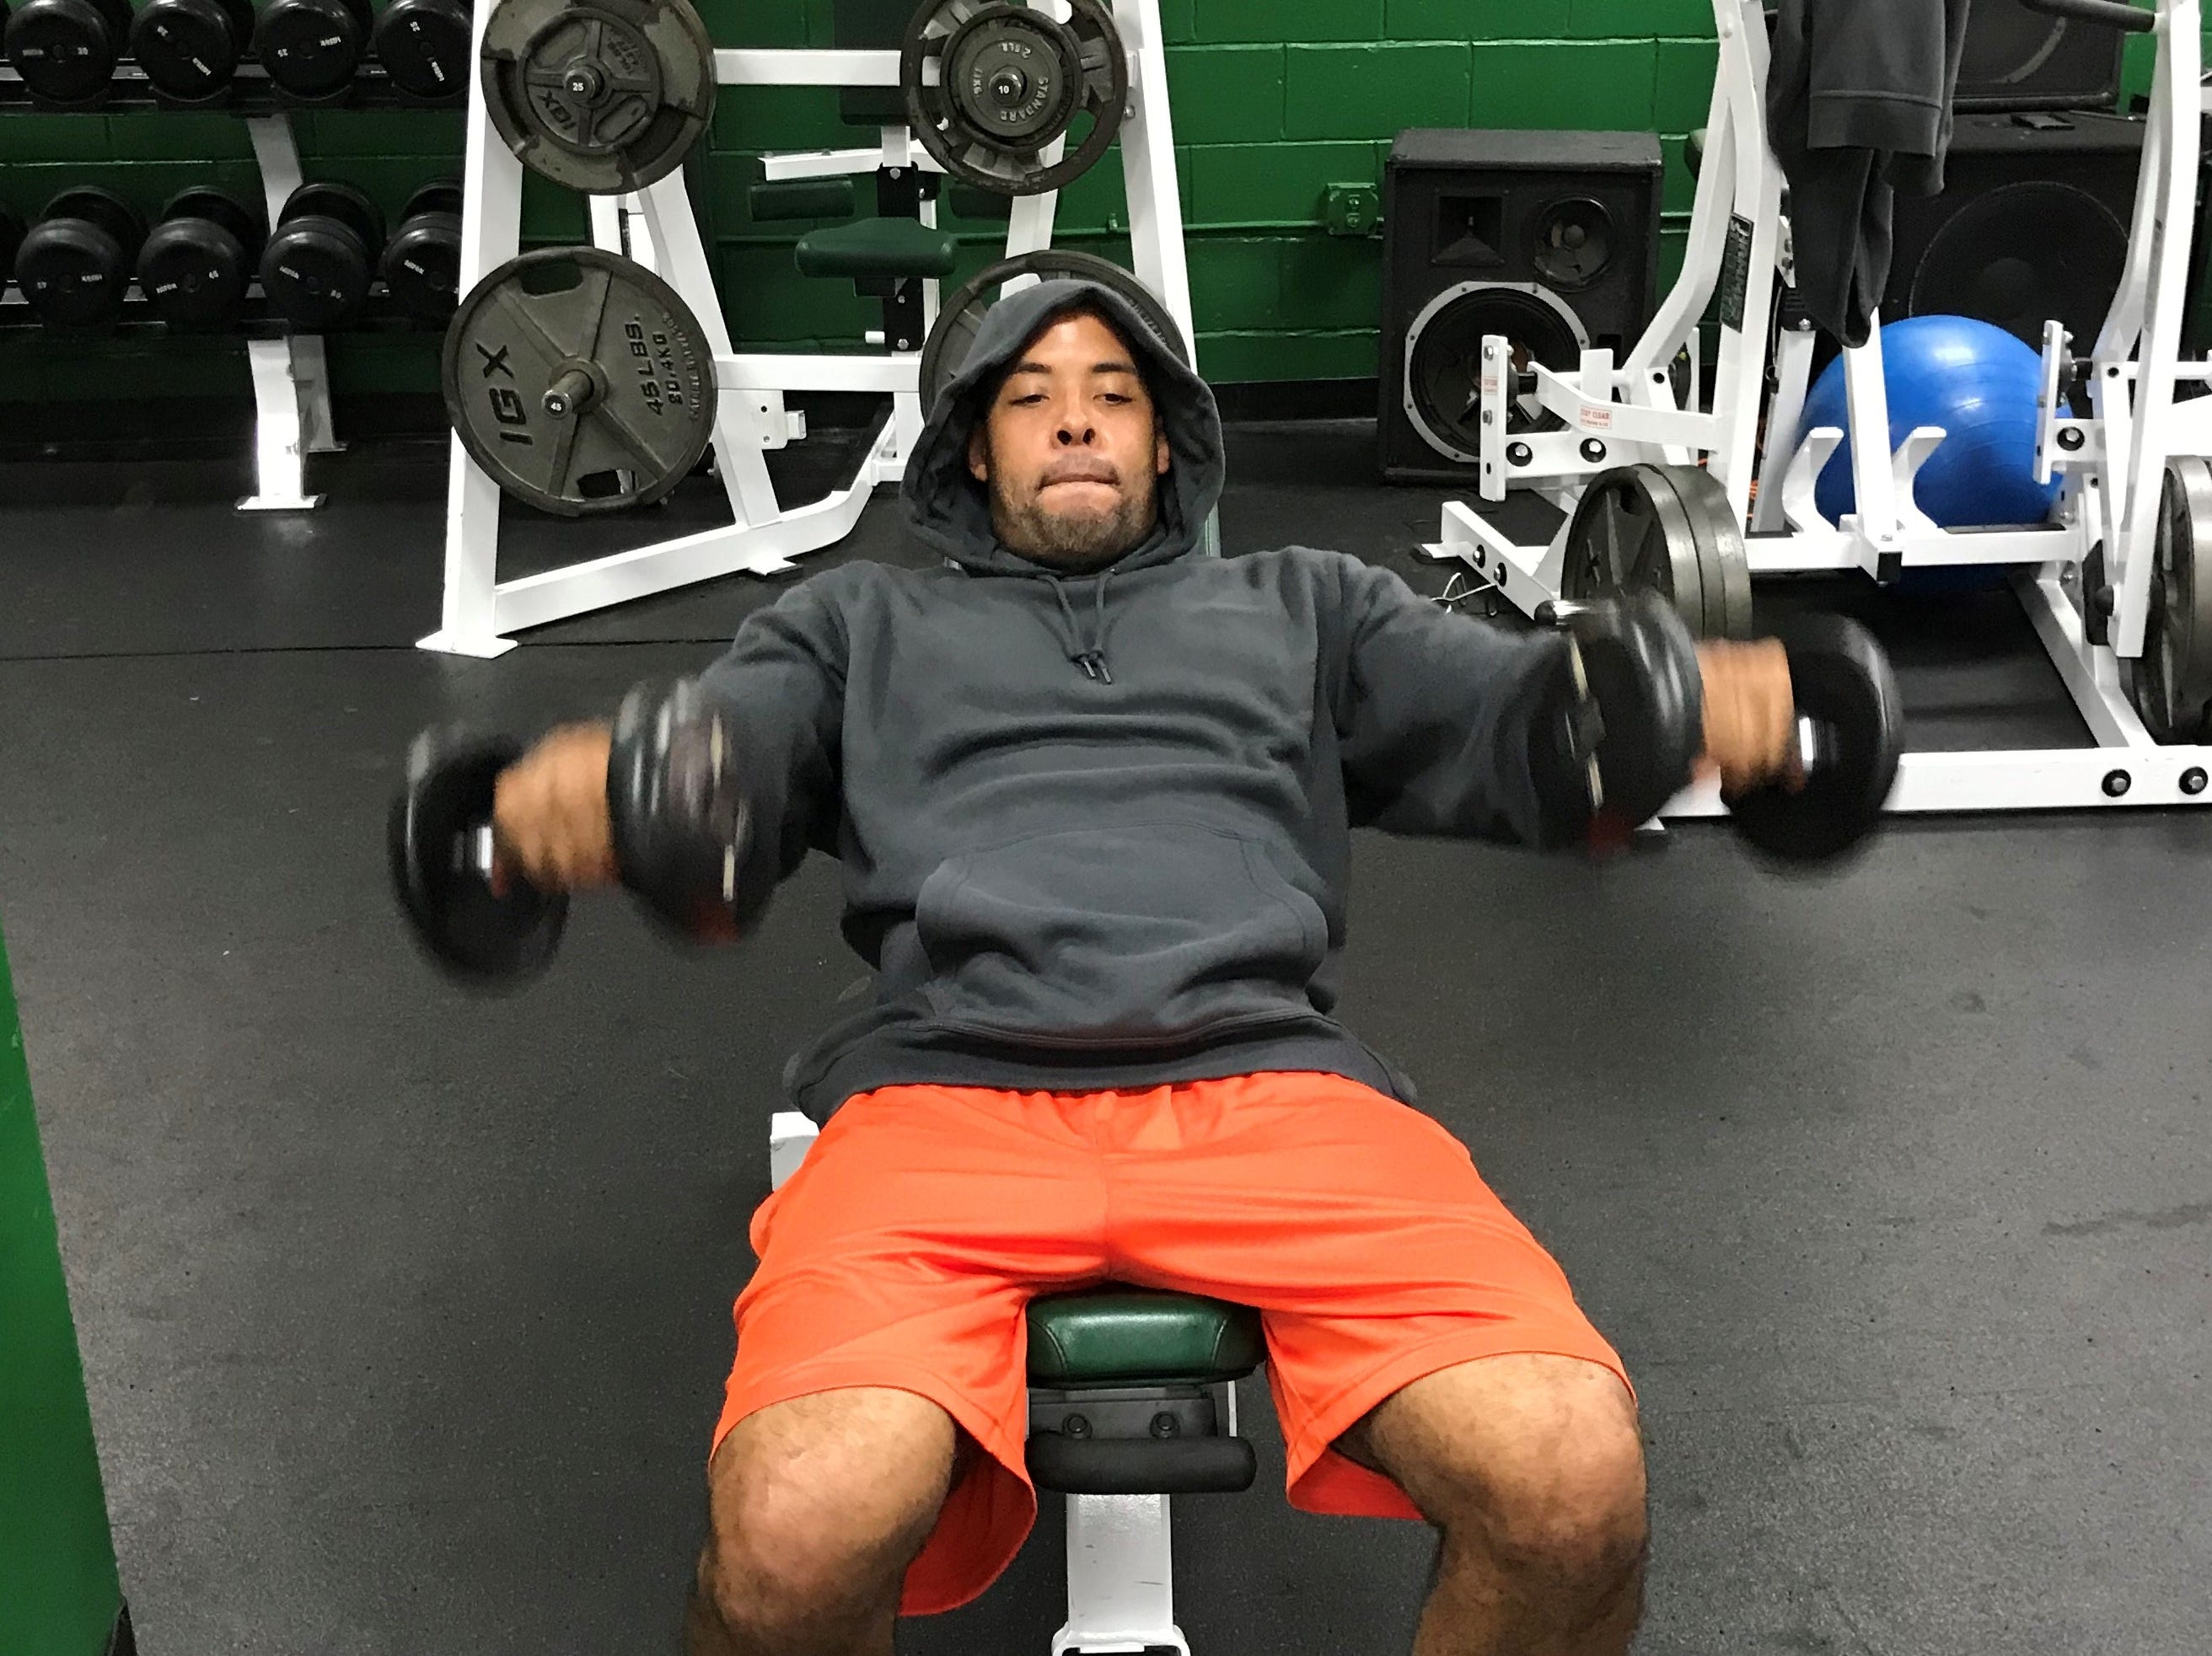 FAMU defensive backs coach Brandon Sharp leads by example and trains in the weight room with players.